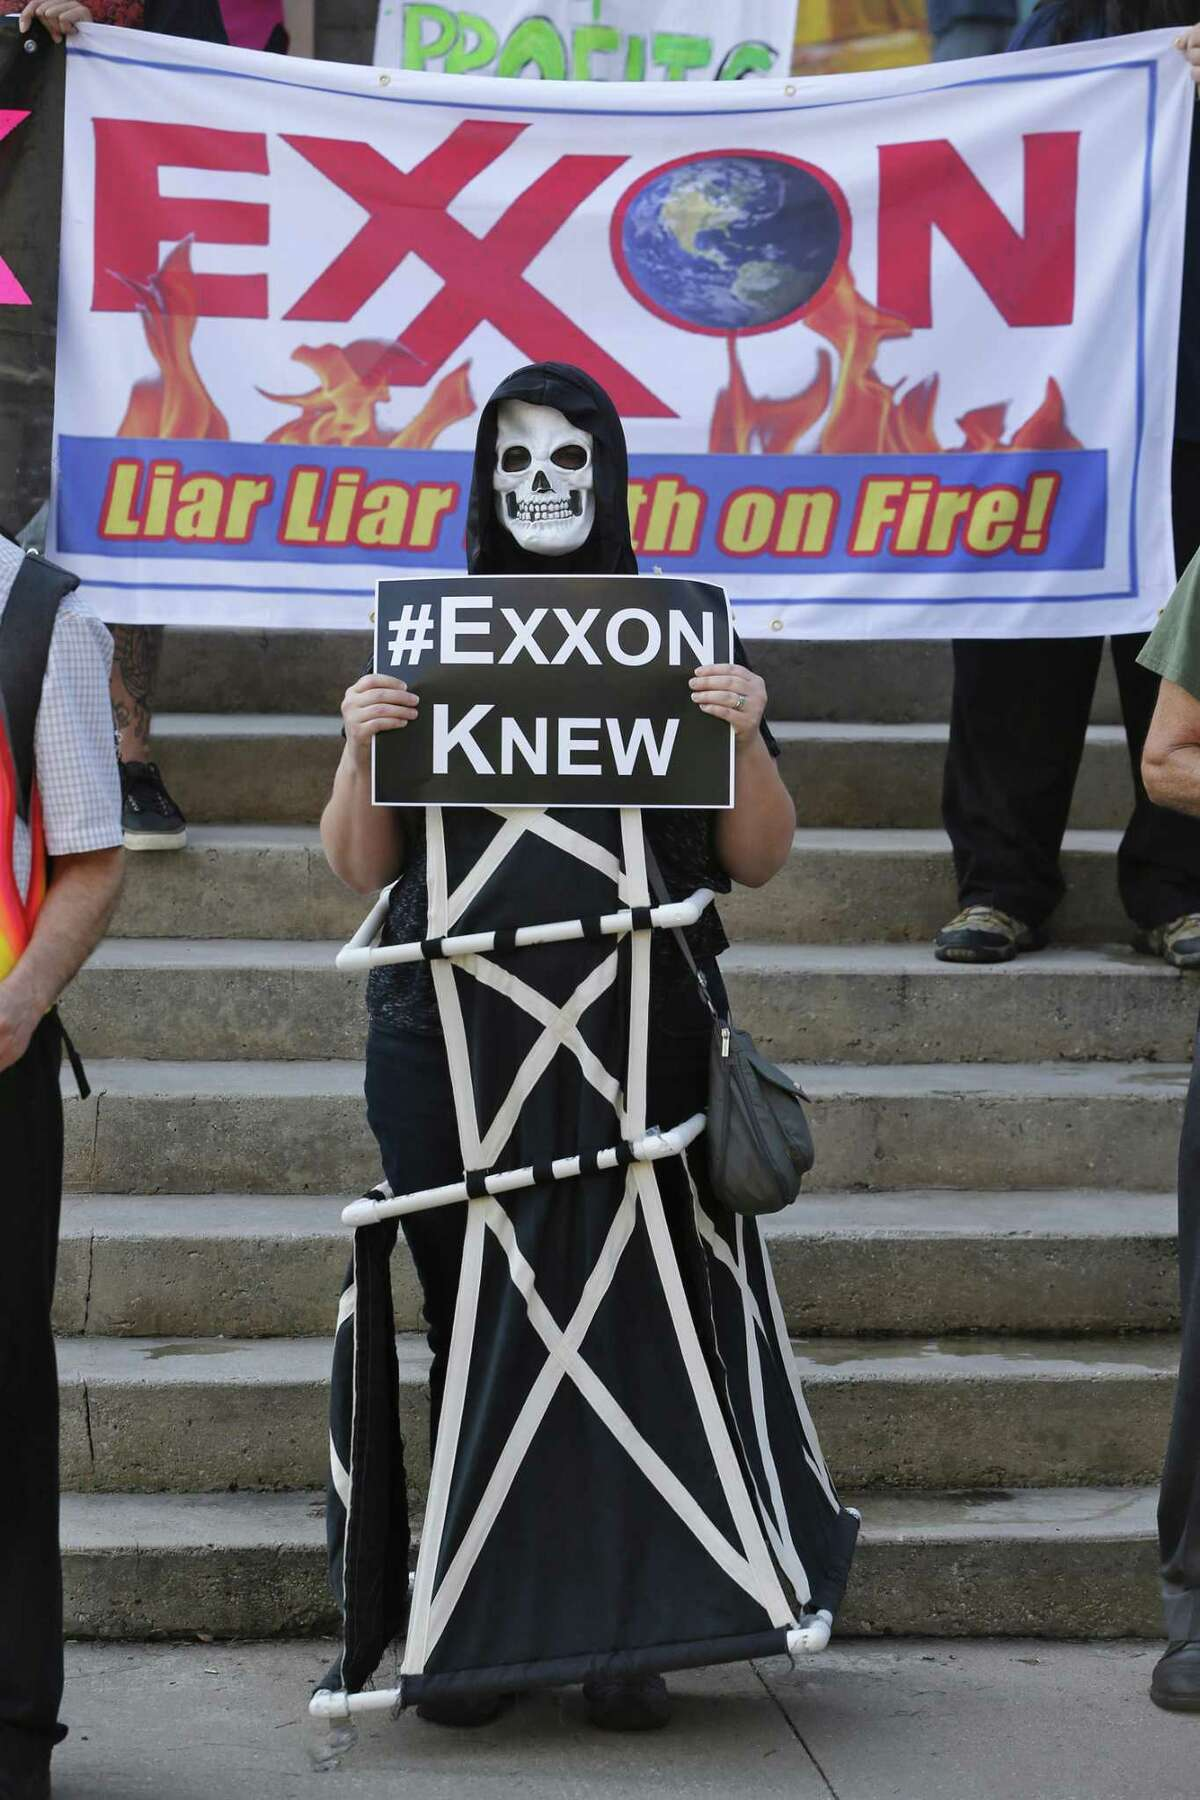 Shannon Carter wears a skeleton mask while dressed as an oil rig as protesters gather outside of the Exxon shareholders meeting across the street from the Morton H. Meyerson Symphony Center in Dallas on Wednesday, May 31, 2017. Exxon Mobil announced Thursday it was joining a corporate coalition working toward the goals of Paris climate change agreement.(Nathan Hunsinger/Dallas Morning News/TNS)